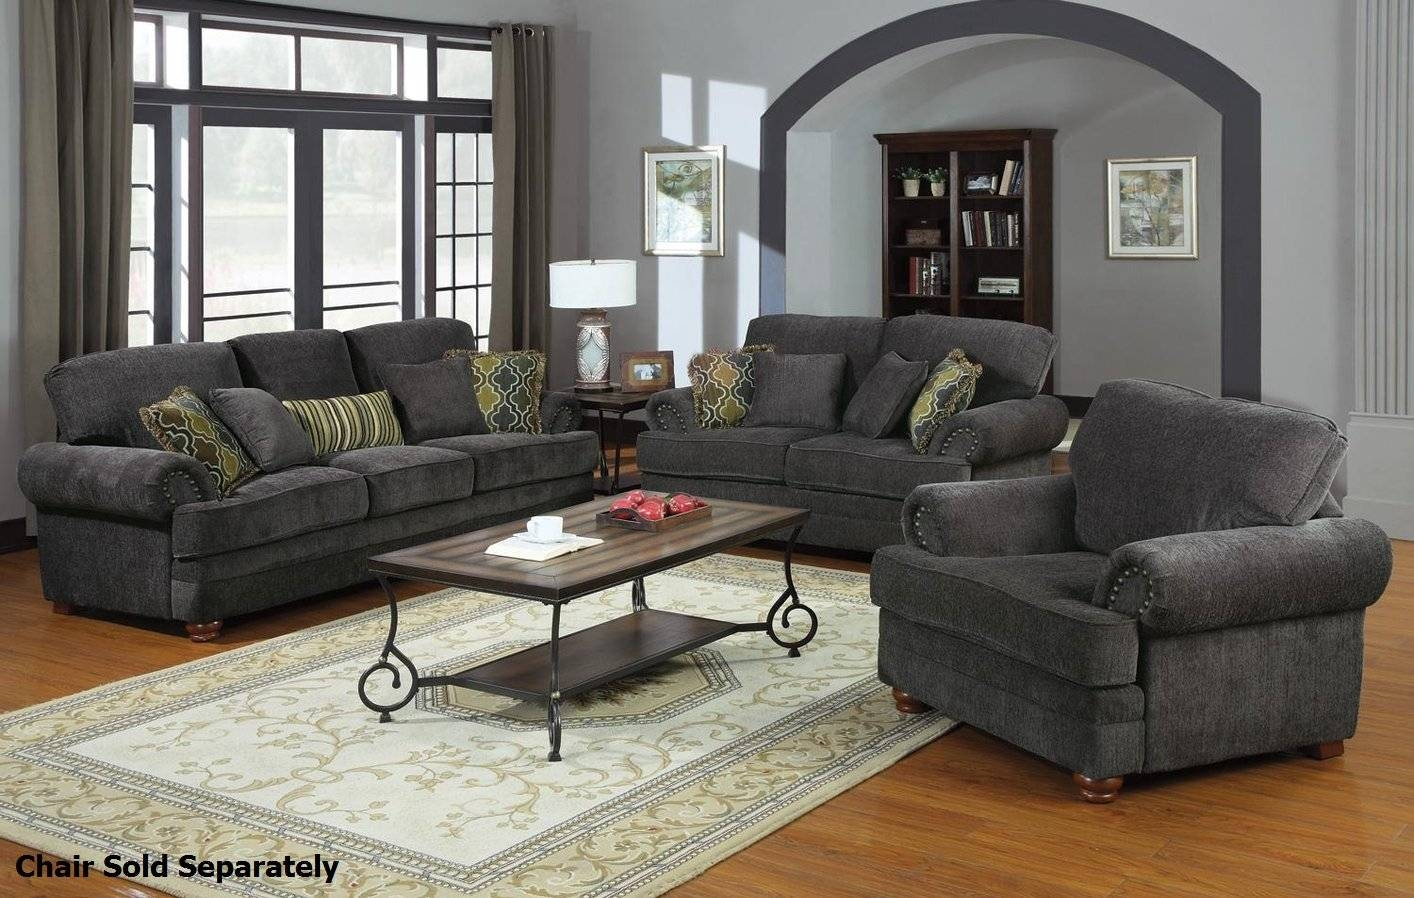 Colton Grey Fabric Sofa And Loveseat Set - Steal-A-Sofa Furniture within Sofa Loveseat and Chairs (Image 9 of 30)